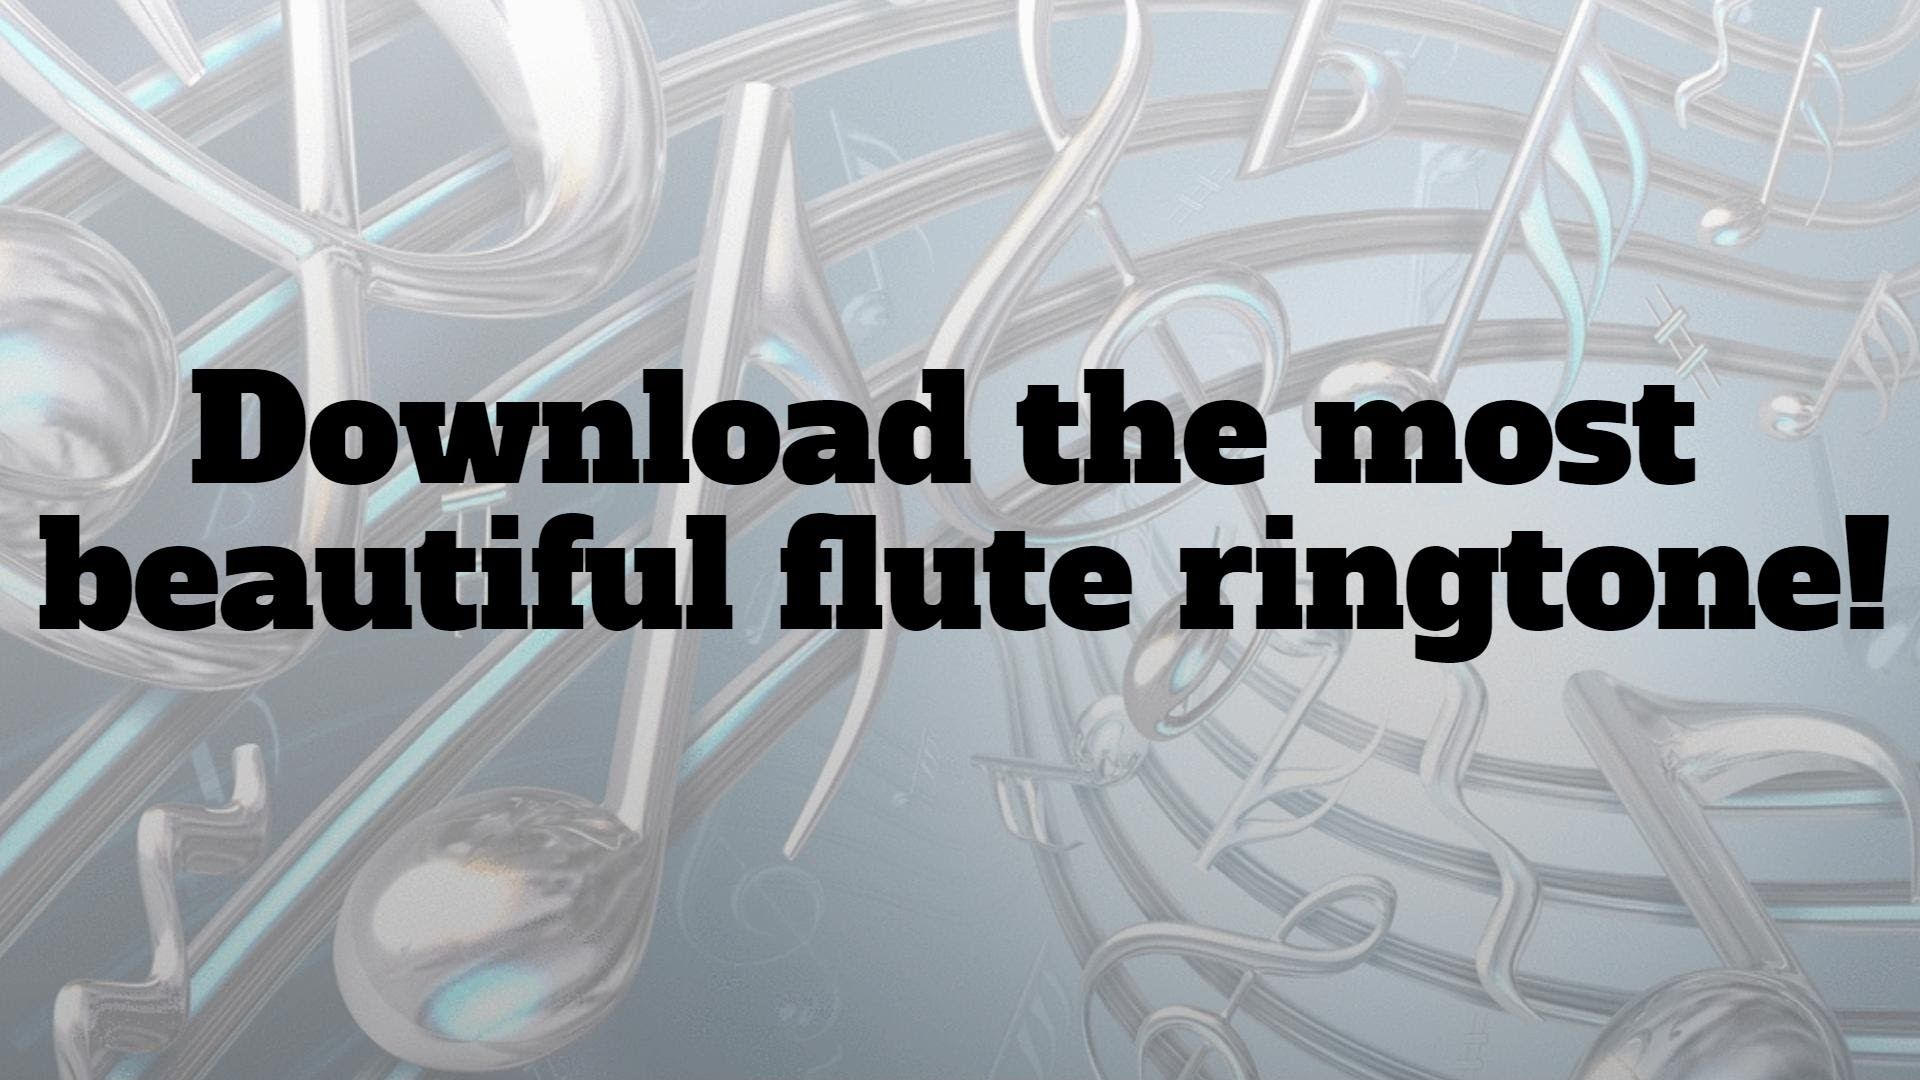 Flute Ringtone Download Now The Most Beautiful Tune Flute Music Websites Beautiful